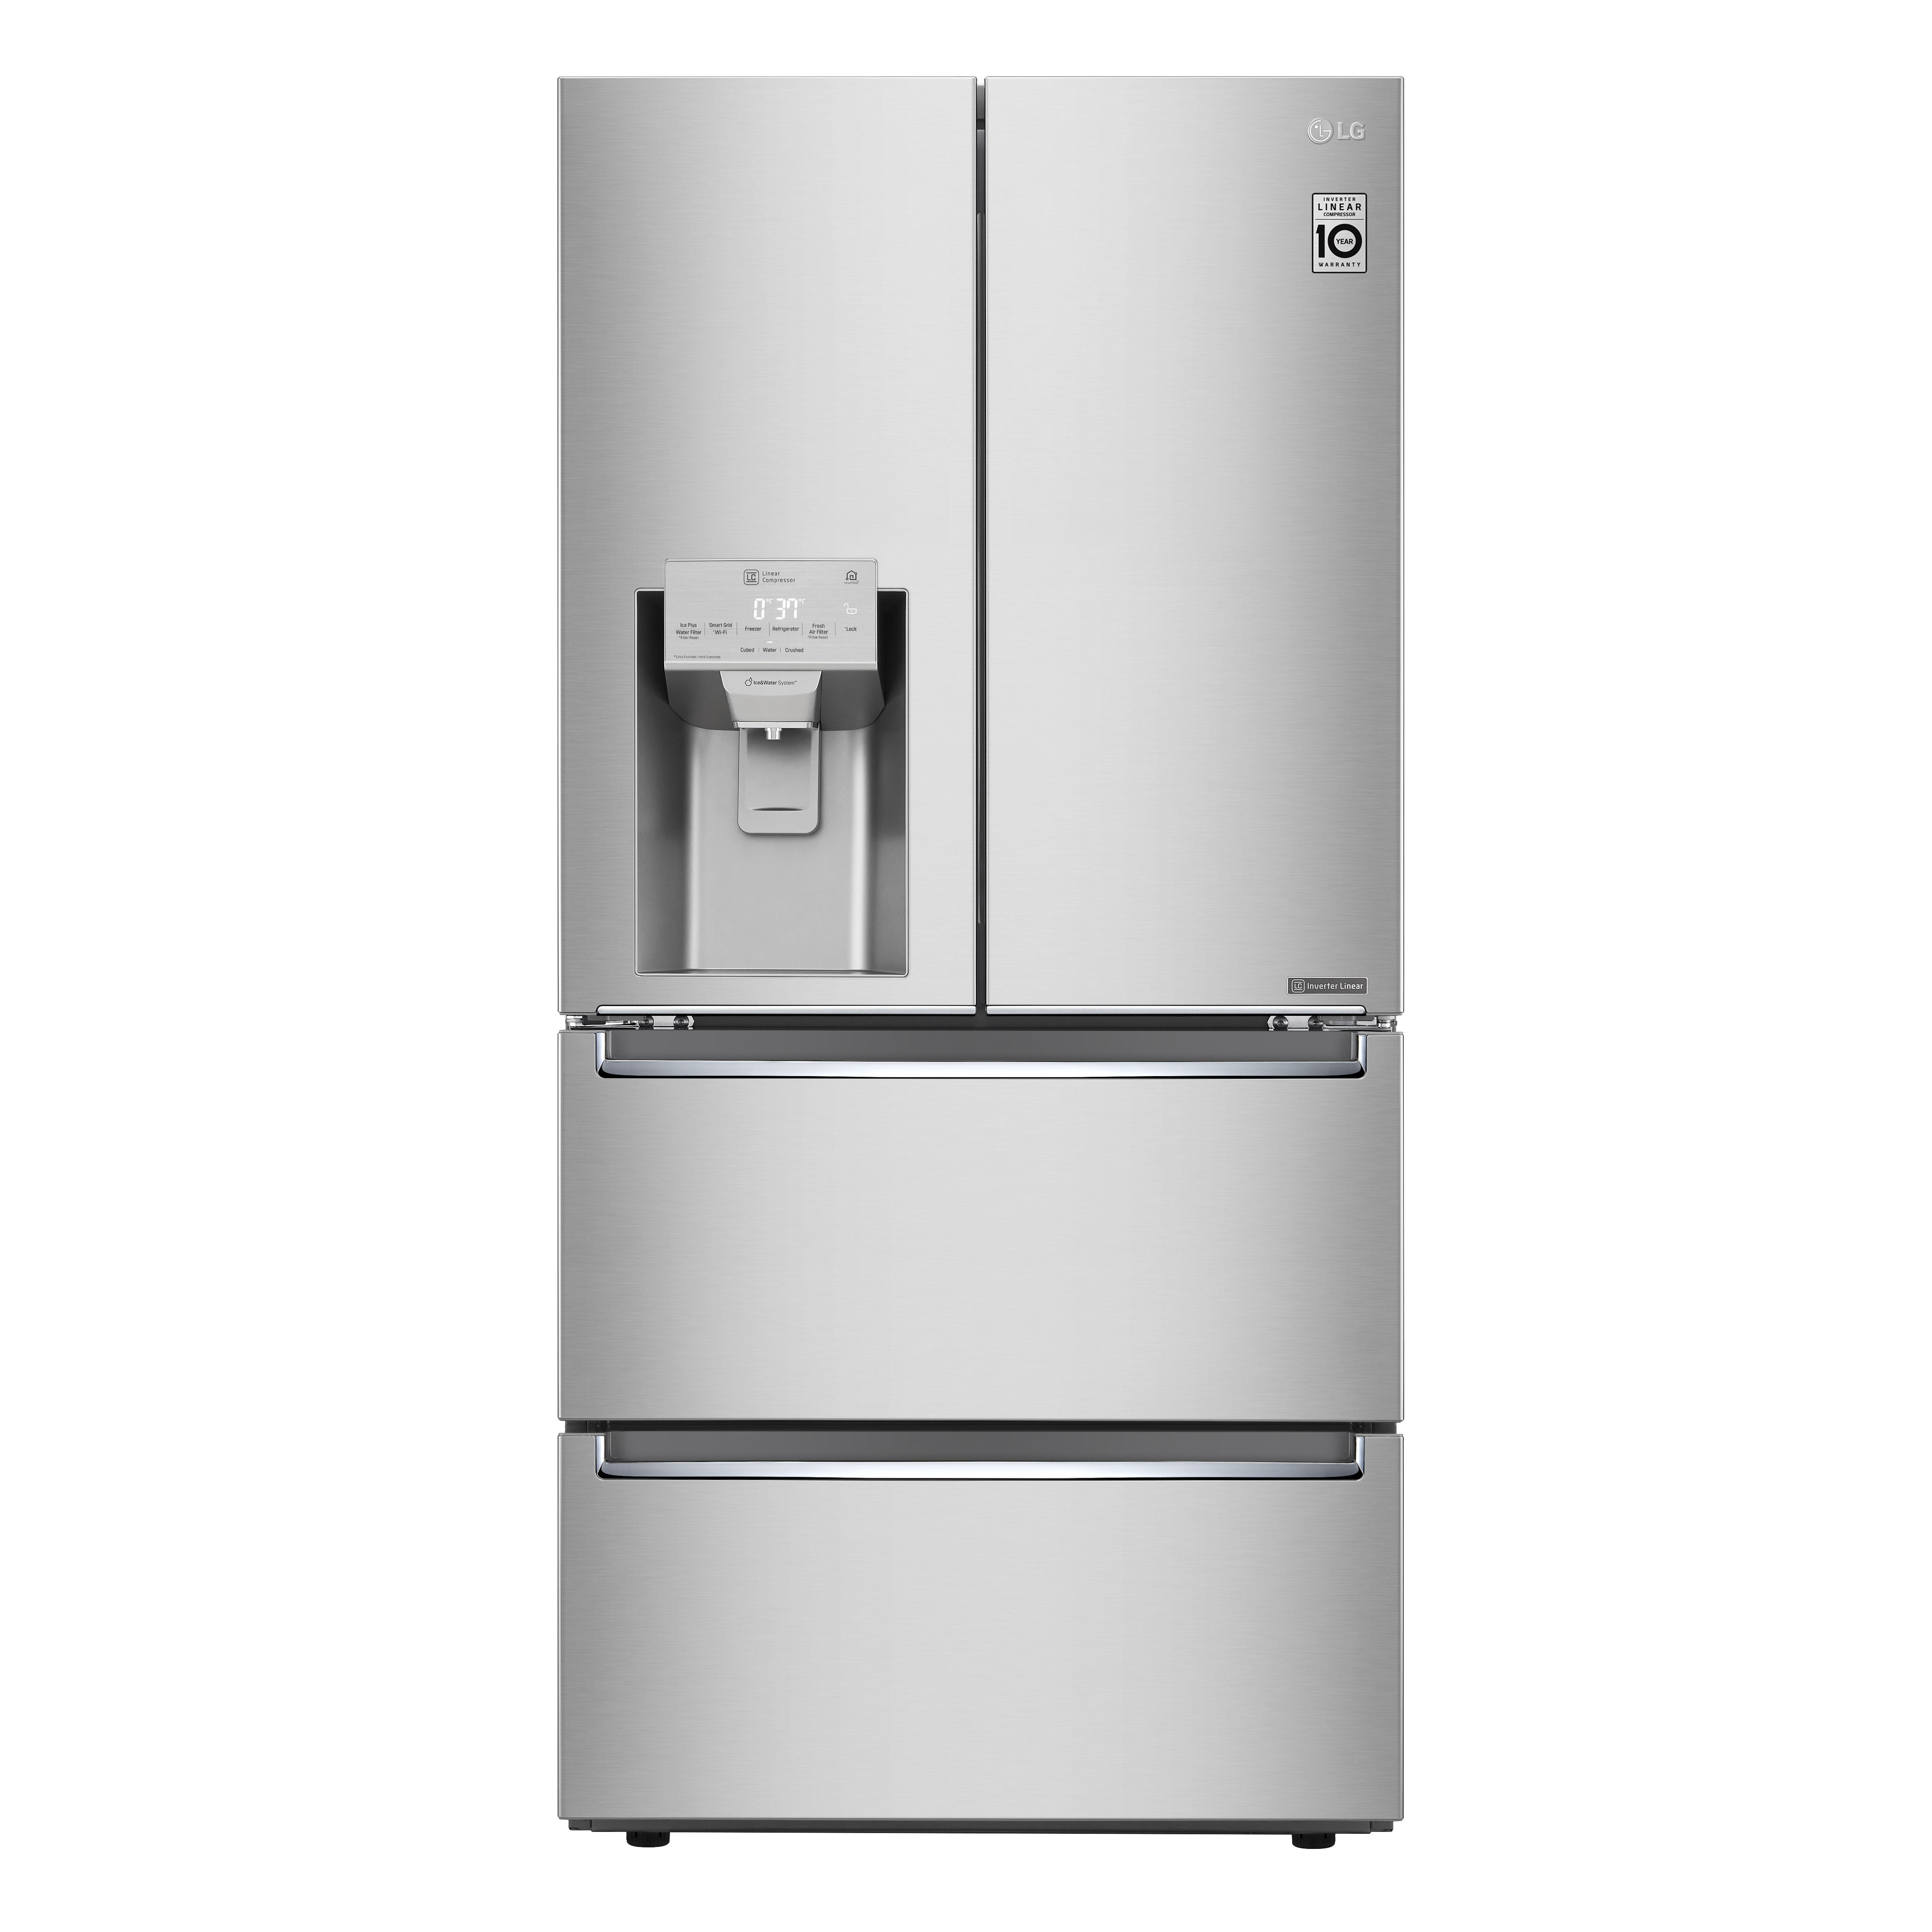 LG Refrigerator in Stainless Steel color showcased by Corbeil Electro Store